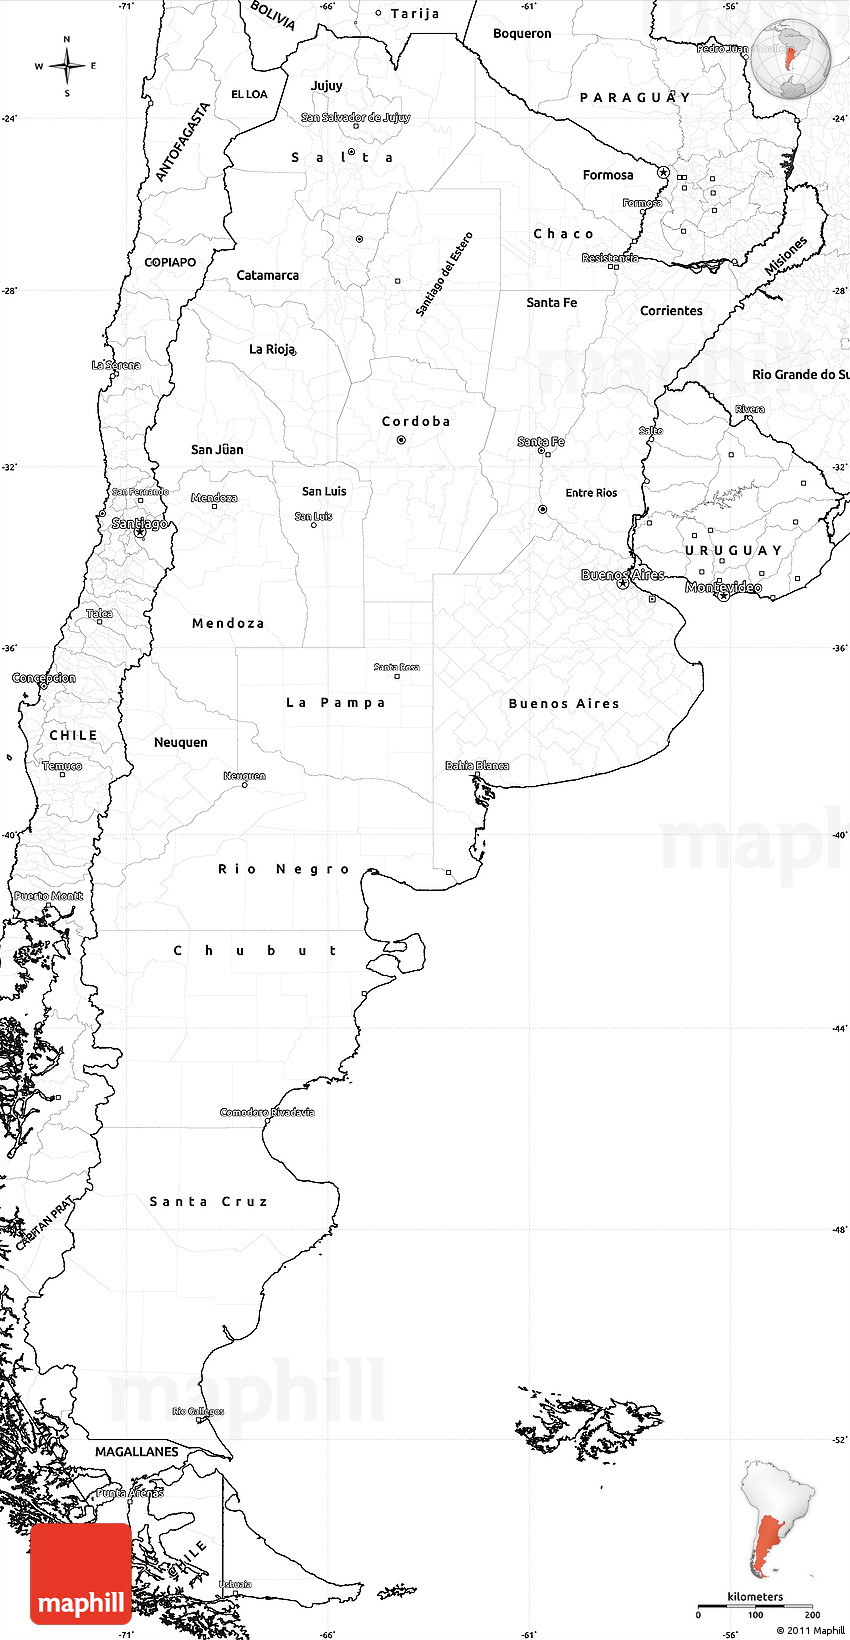 Blank Simple Map Of Argentina - Argentina map outline